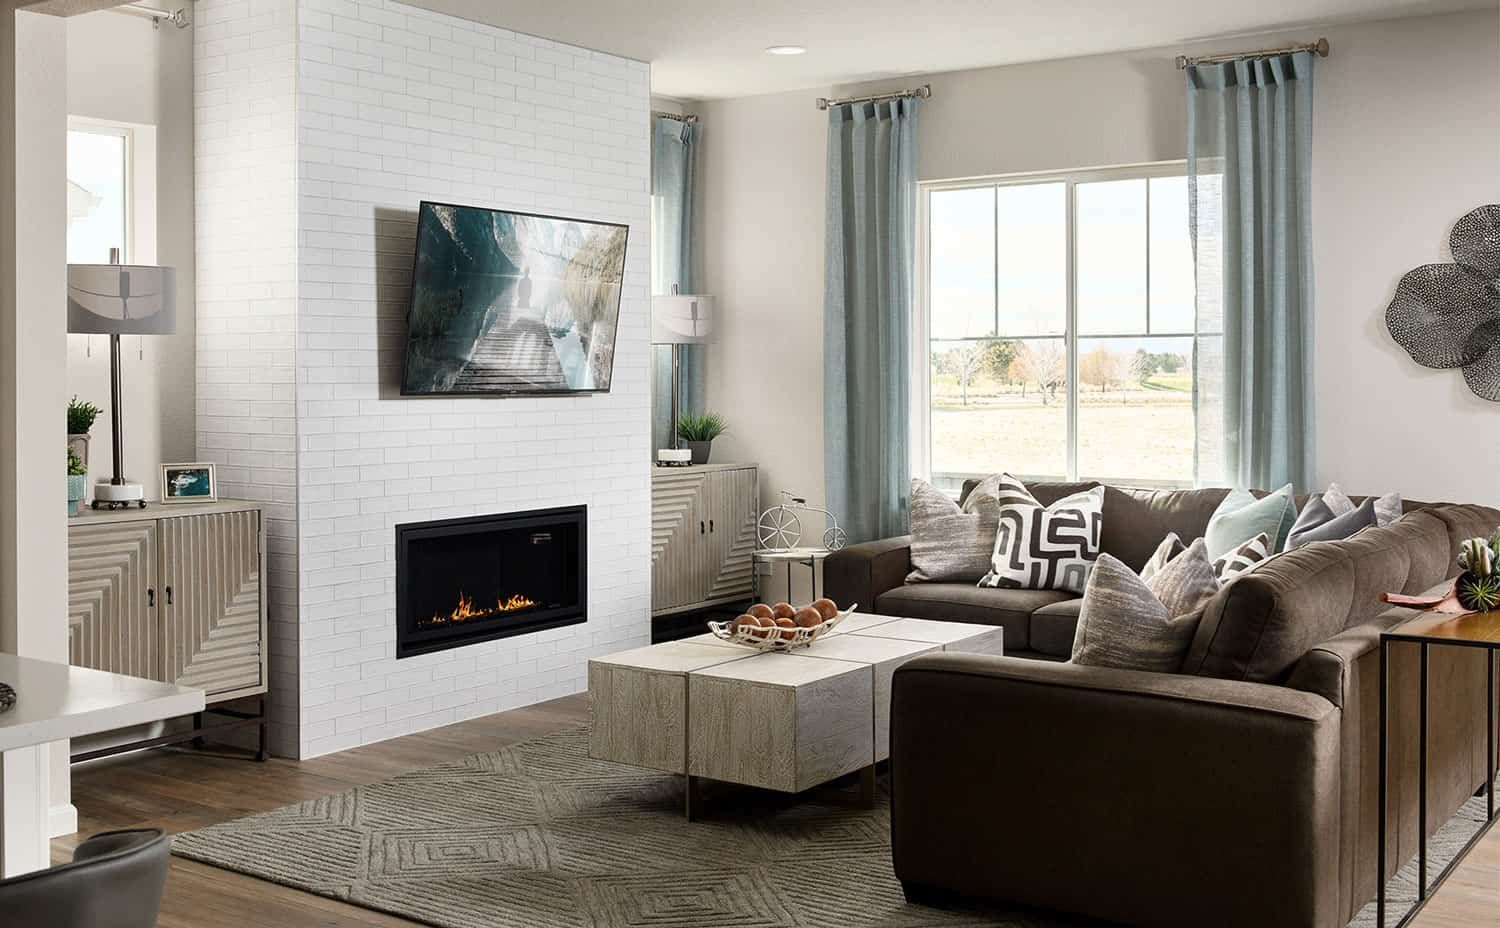 Living Area featured in the Plan 4032 By Tri Pointe Homes in Denver, CO